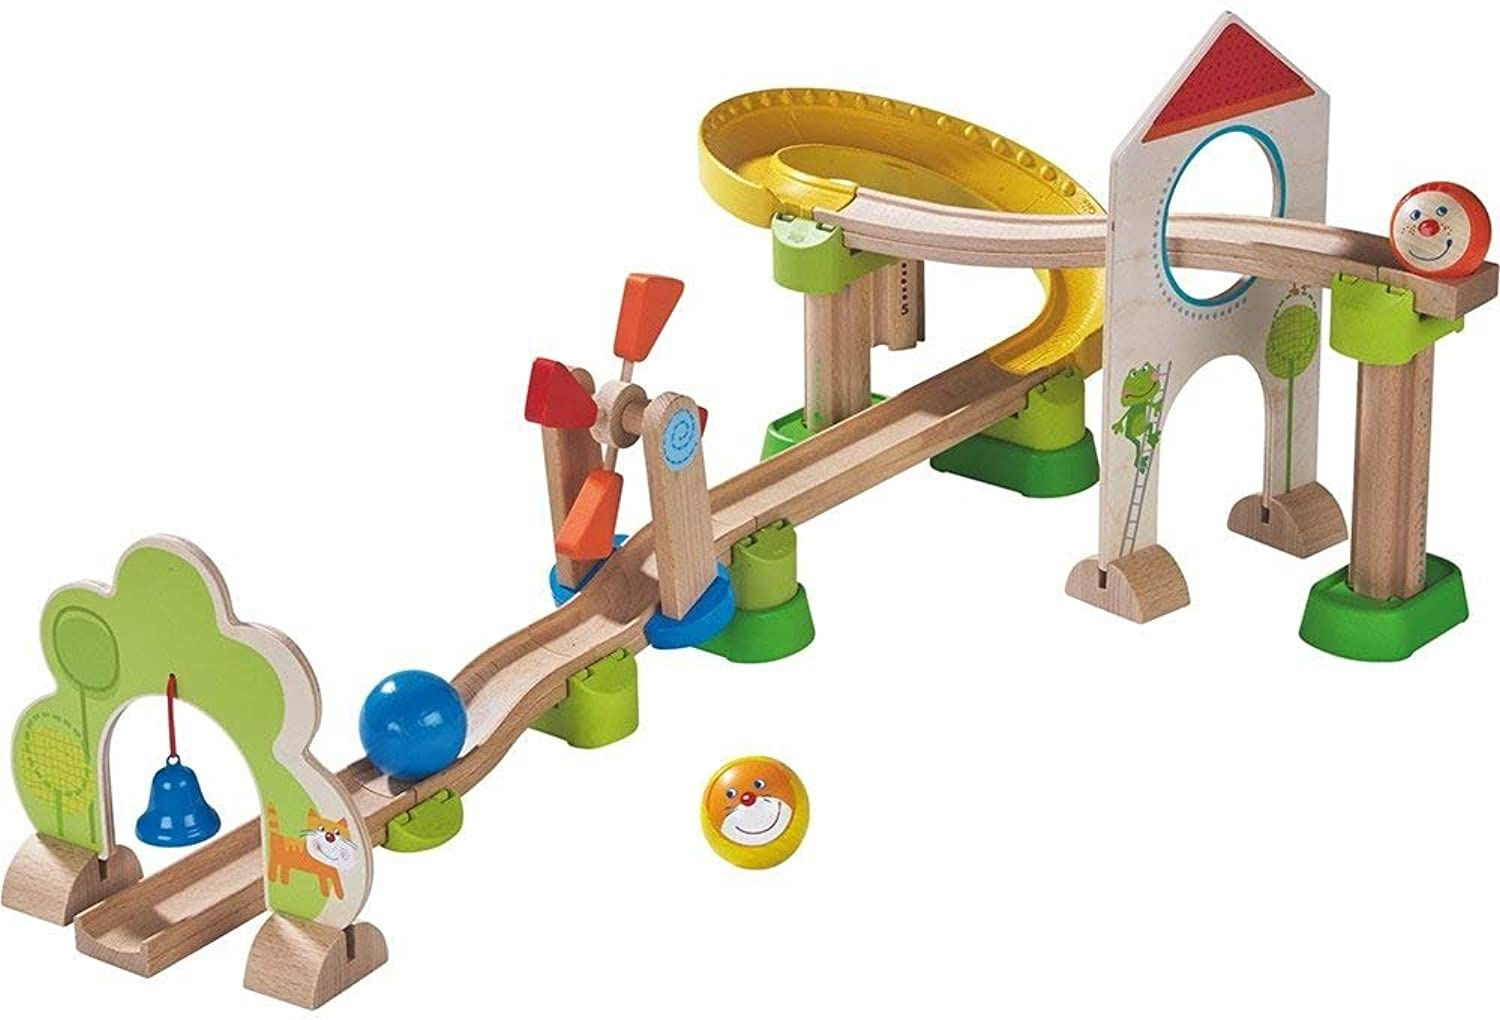 HABA Kullerbu Windmill Playset  25 Piece Ball Track Starter Set with Special Effects  Ages 2+